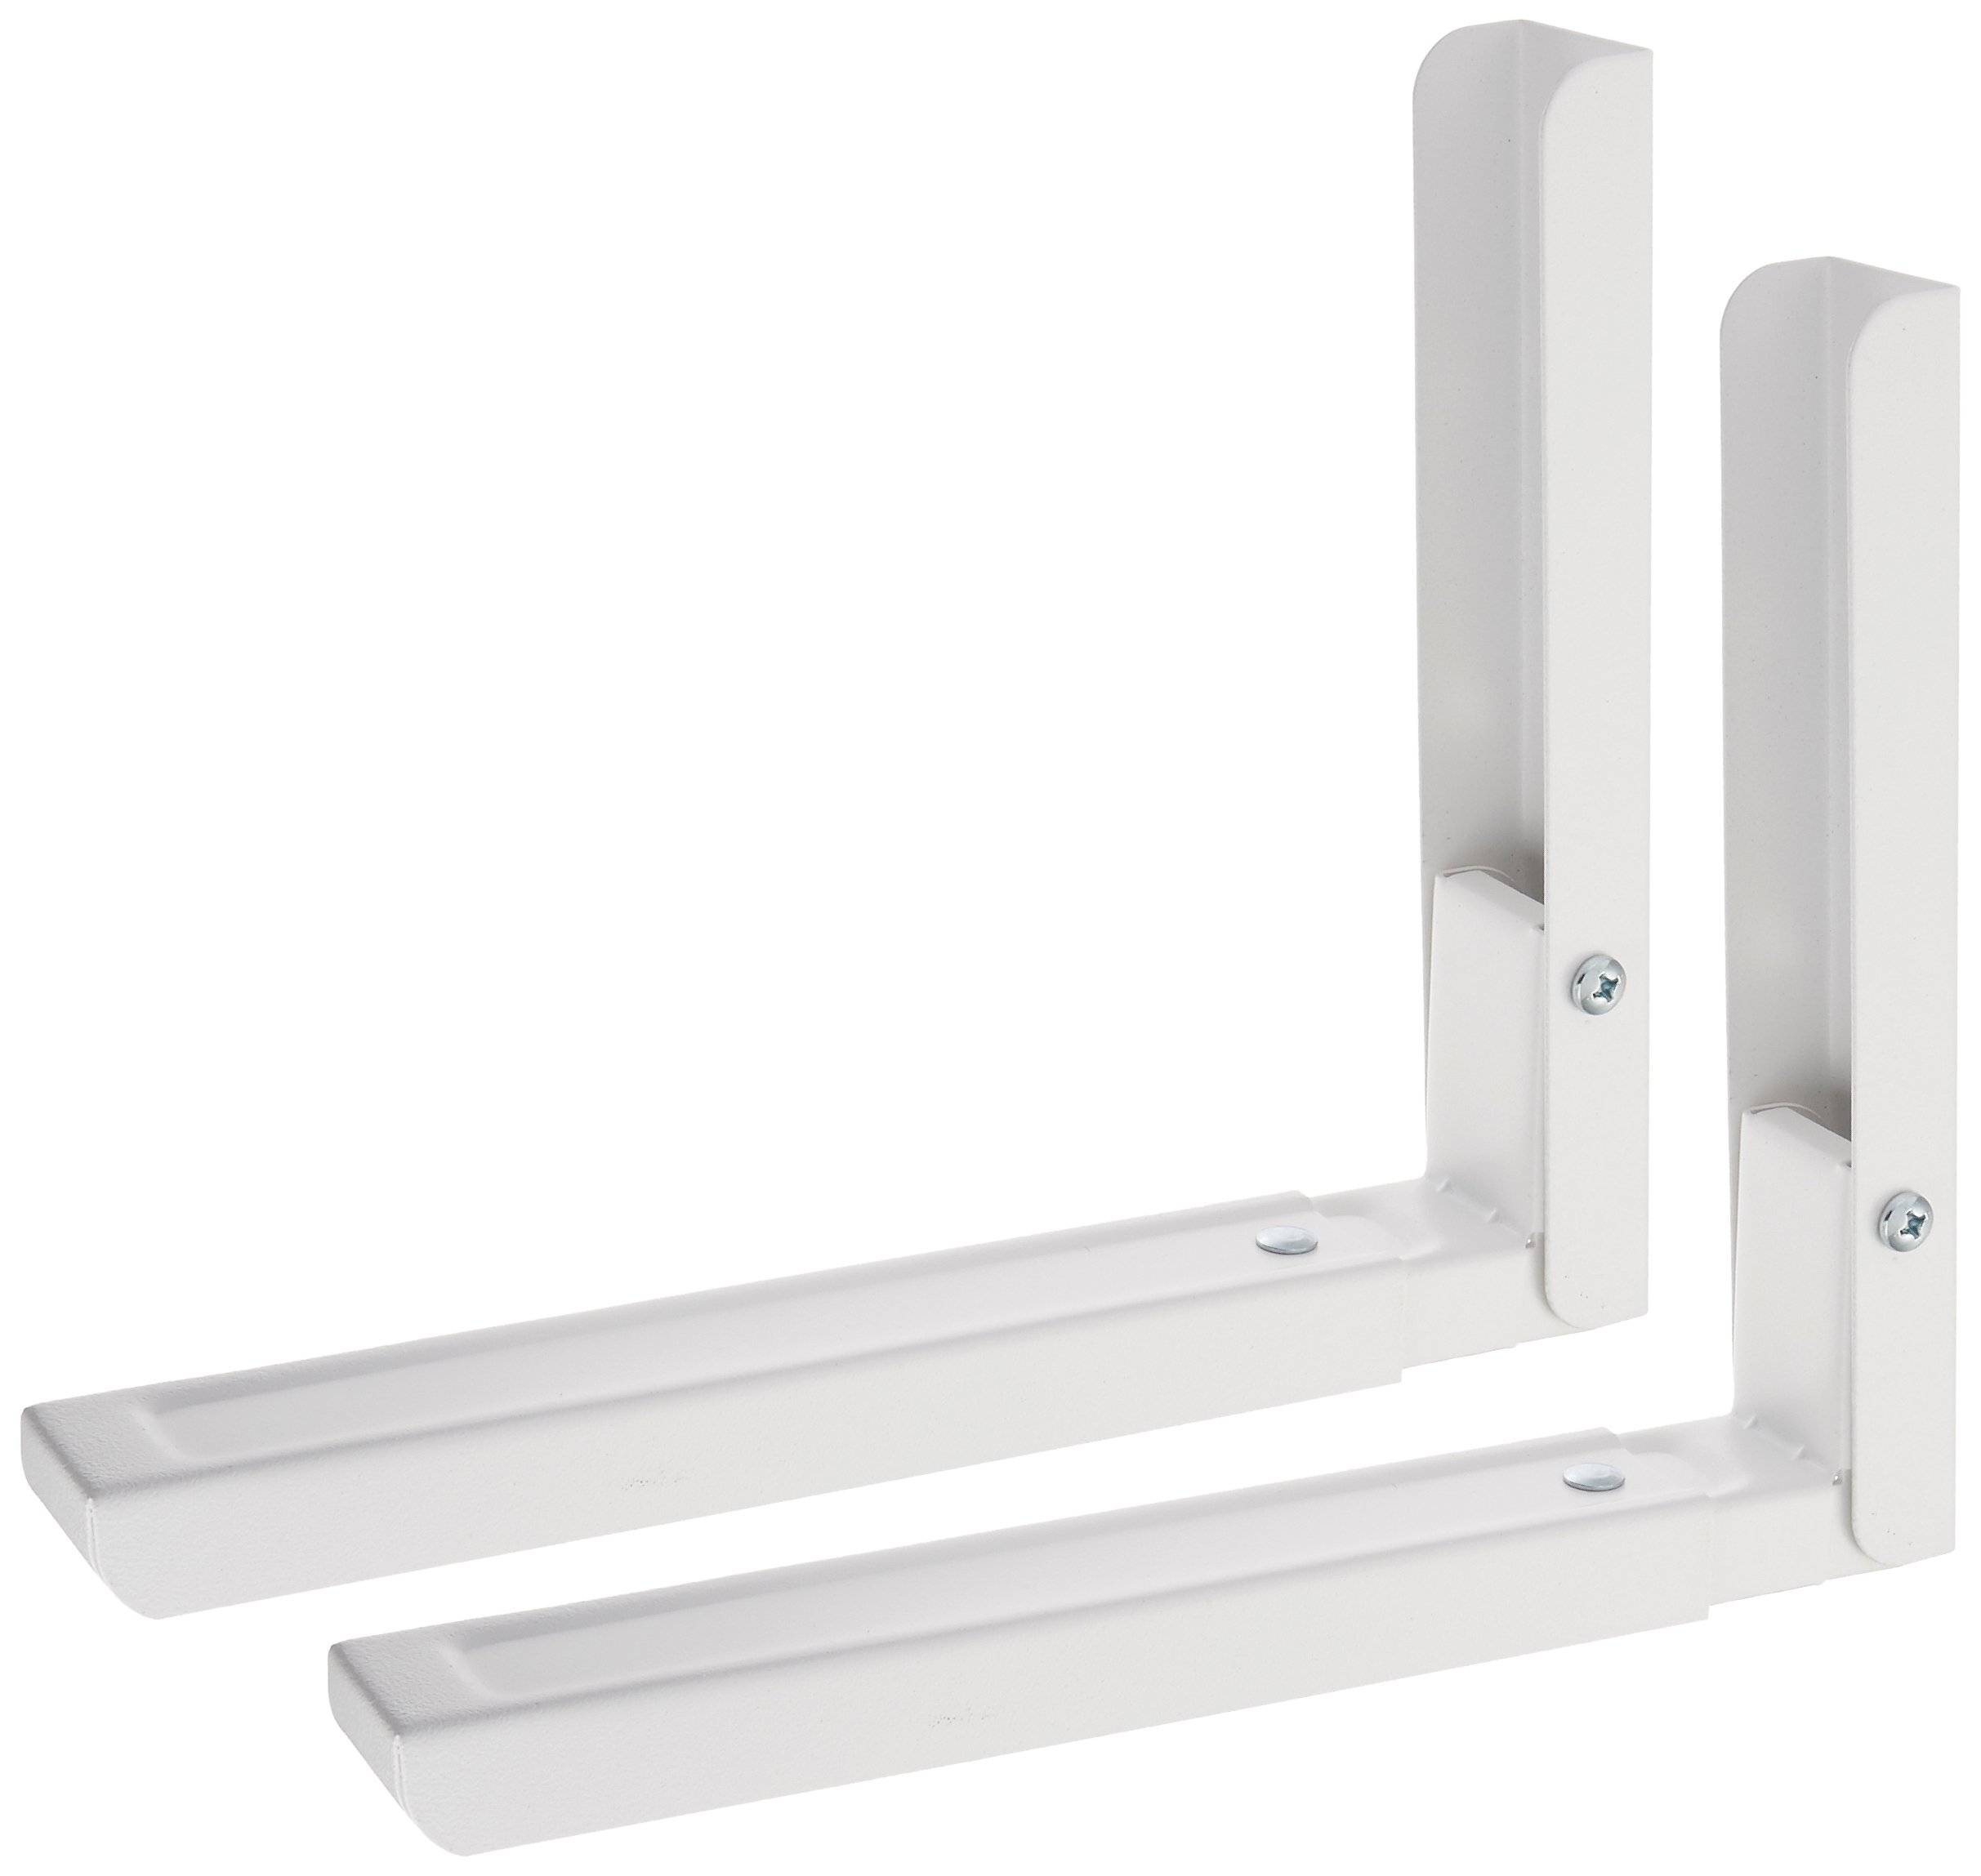 AVF EM60W-A Universal Wall-Mounted Microwave Brackets (Set of 2) - White